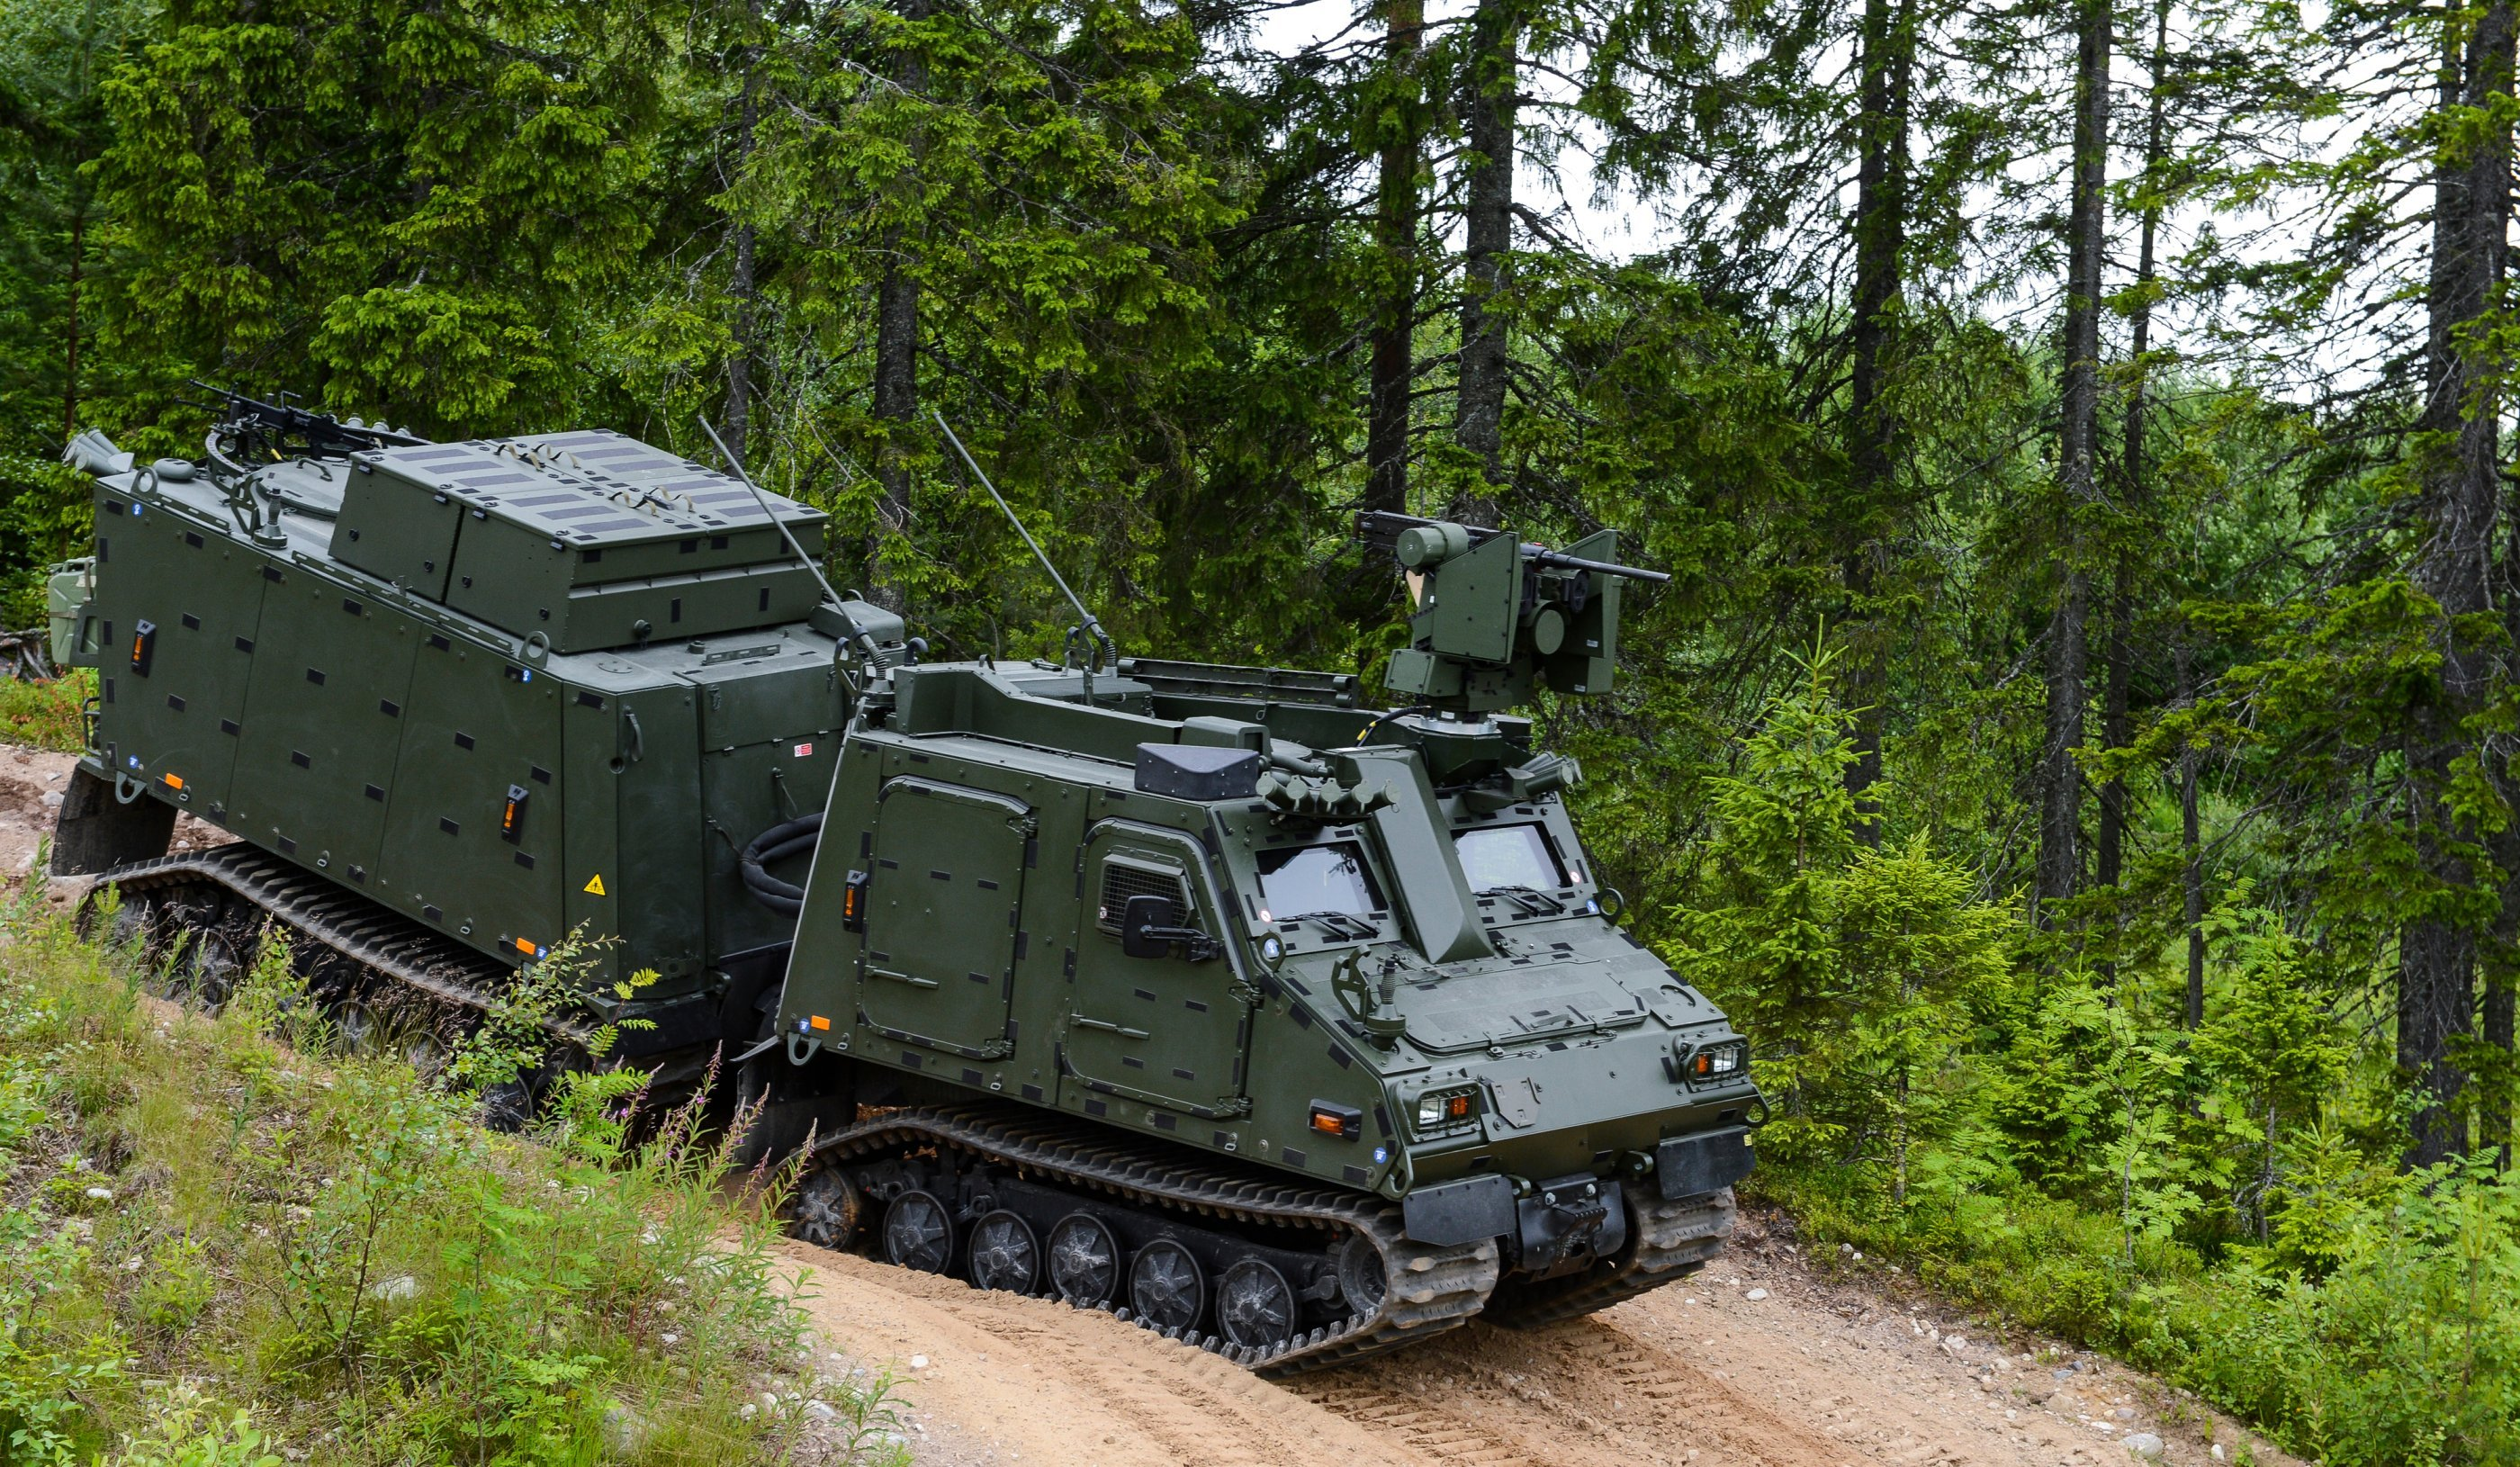 The BvS10 armored all-terrain vehicle is designed to provide total operational support where other vehicles cannot. (Photo: BAE Systems, Inc.)